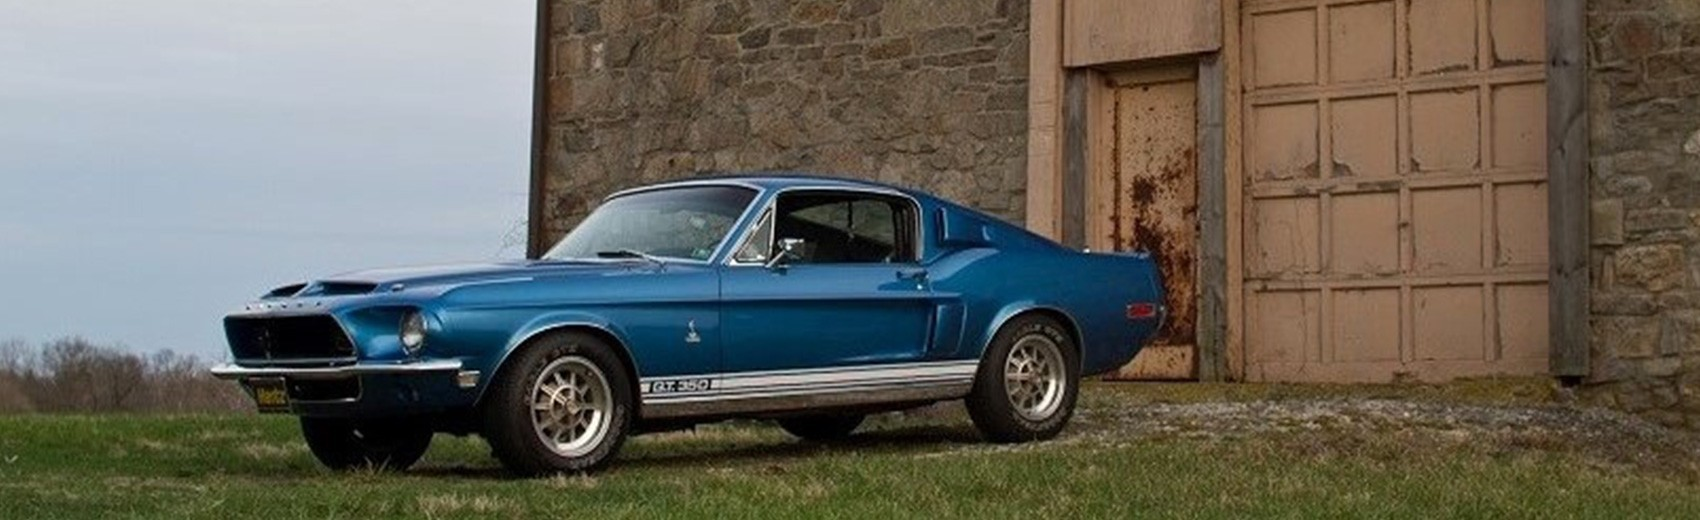 Classic Ford Mustang